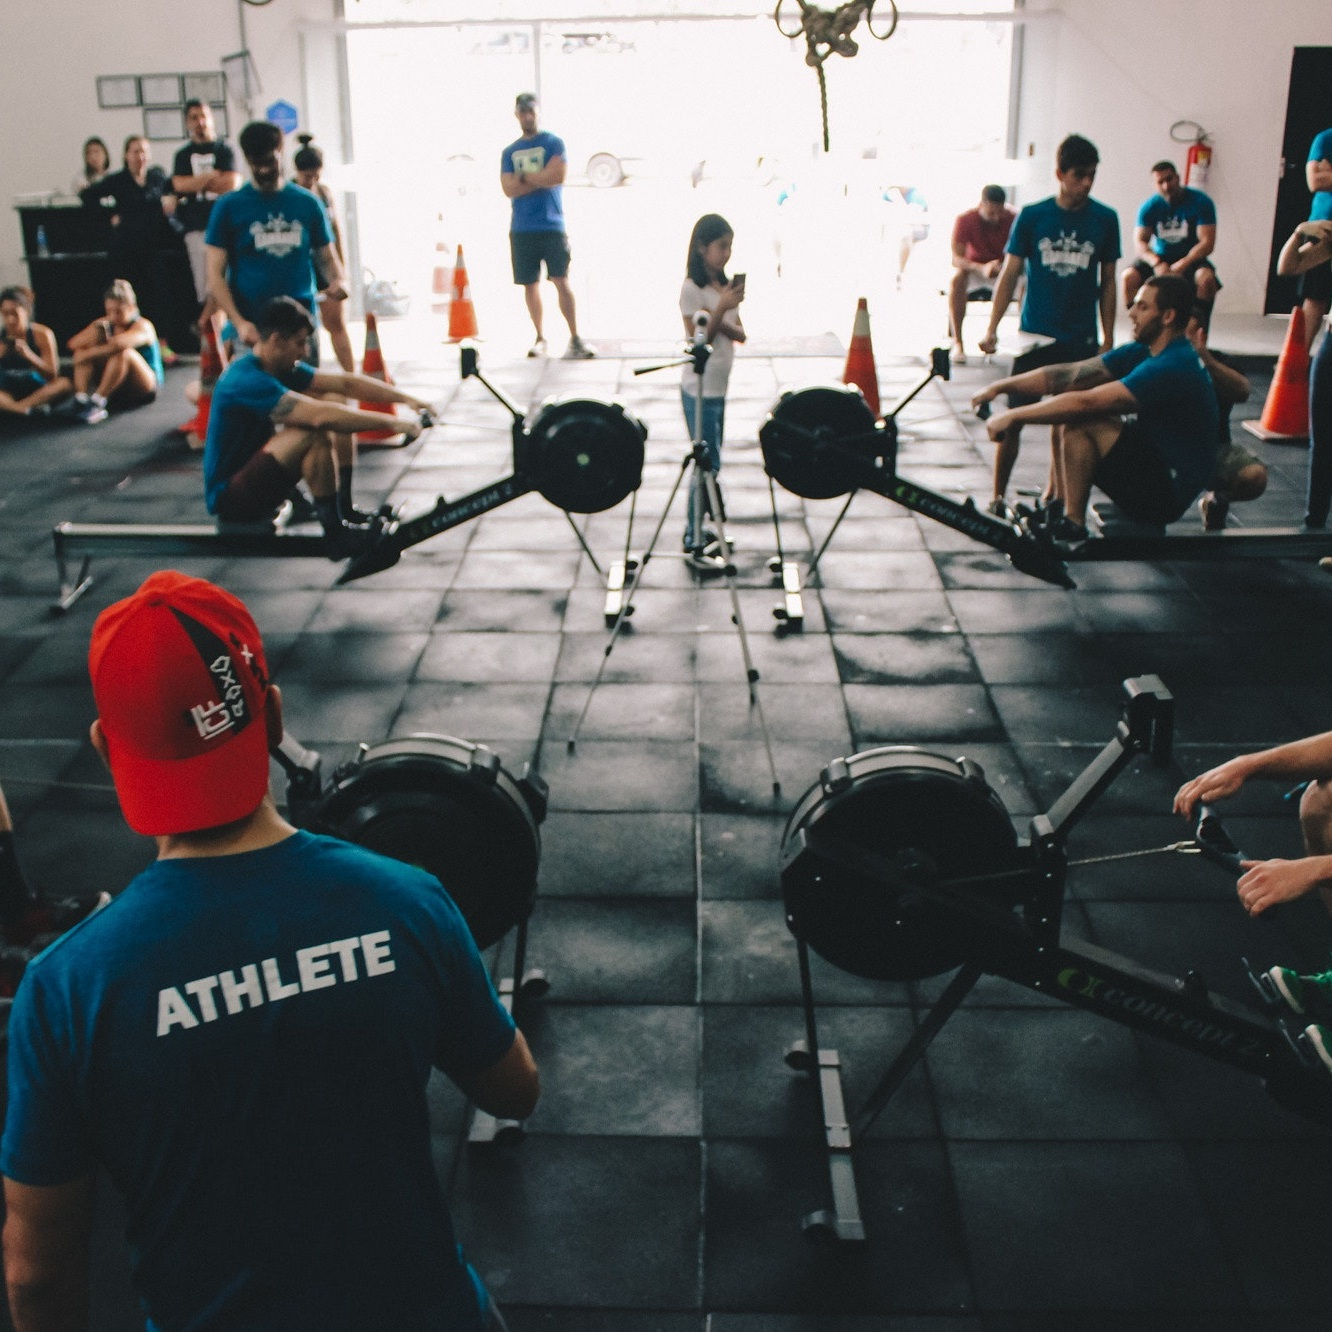 COMMUNITY - People join a gym to improve their fitness but stay members of a gym because of the community. Our goal at CrossFit Zenith is to build a community that supports each other where members are more than just acquaintances, they are friends.